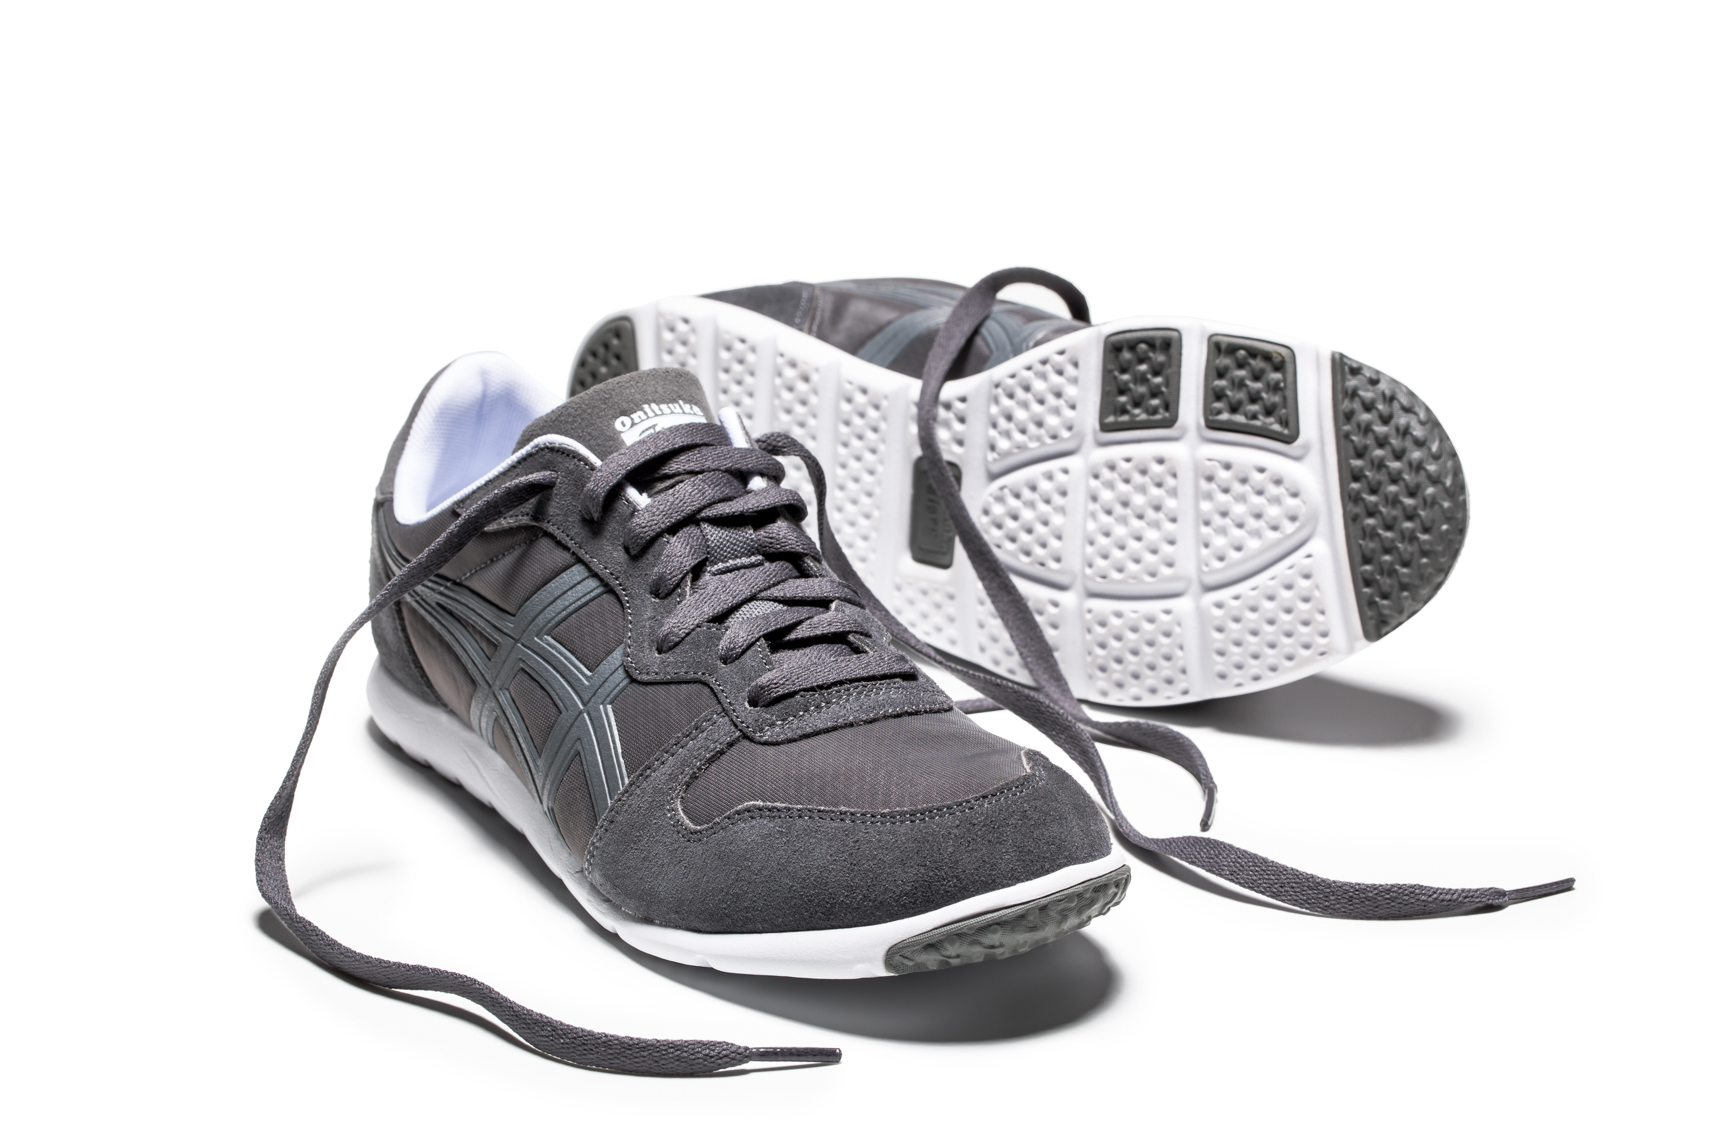 Onitsuka-Tiger-San-Francisco-Oakland-Product-Photographer-0528